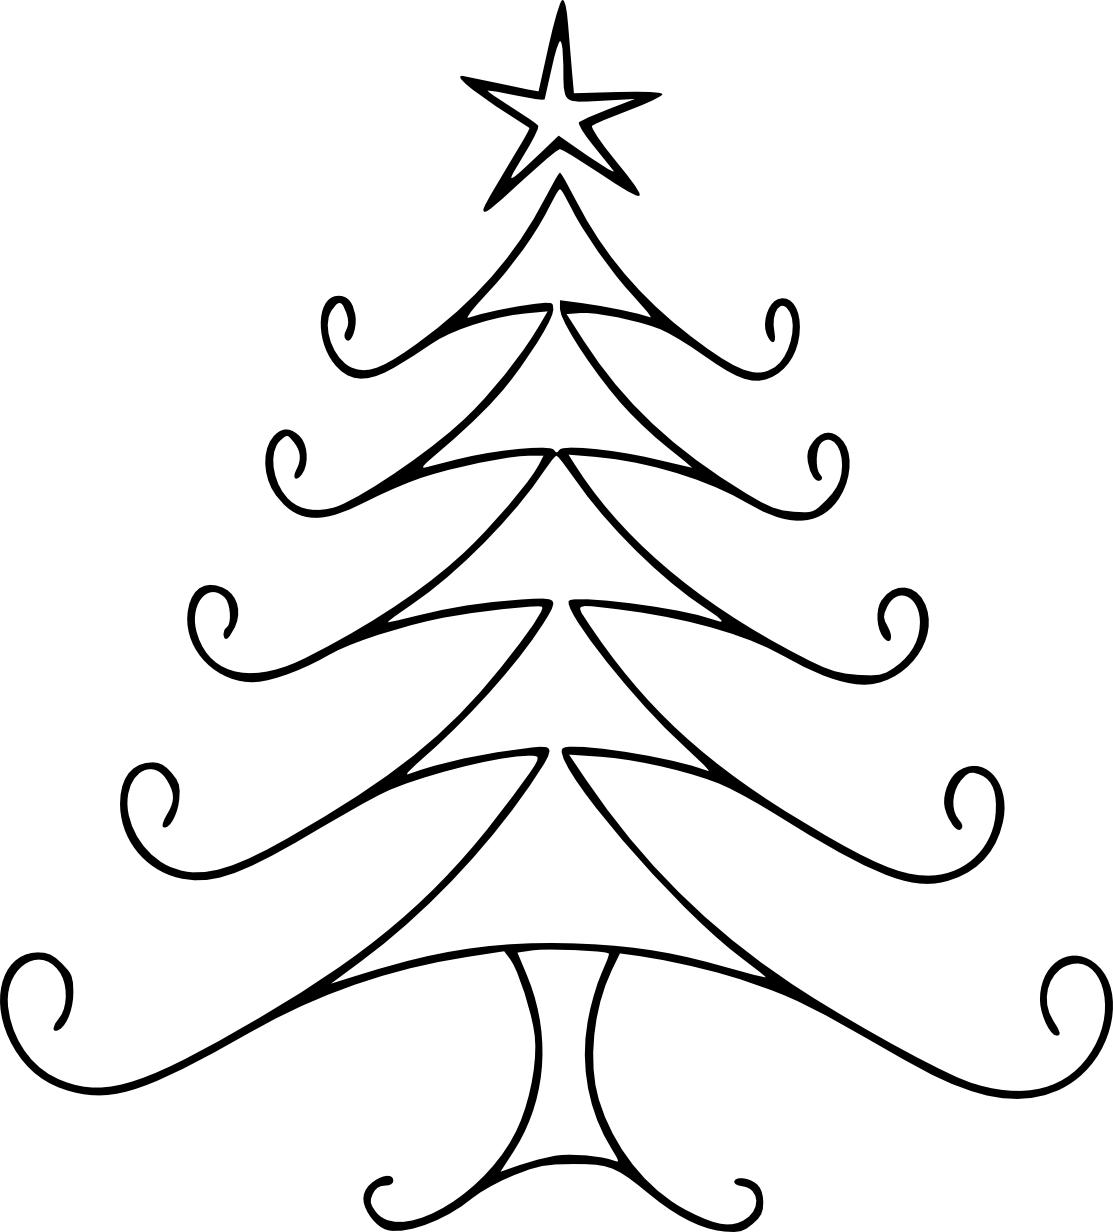 1113x1232 Download This Christmas Tree Digital Stamp For Your Collection